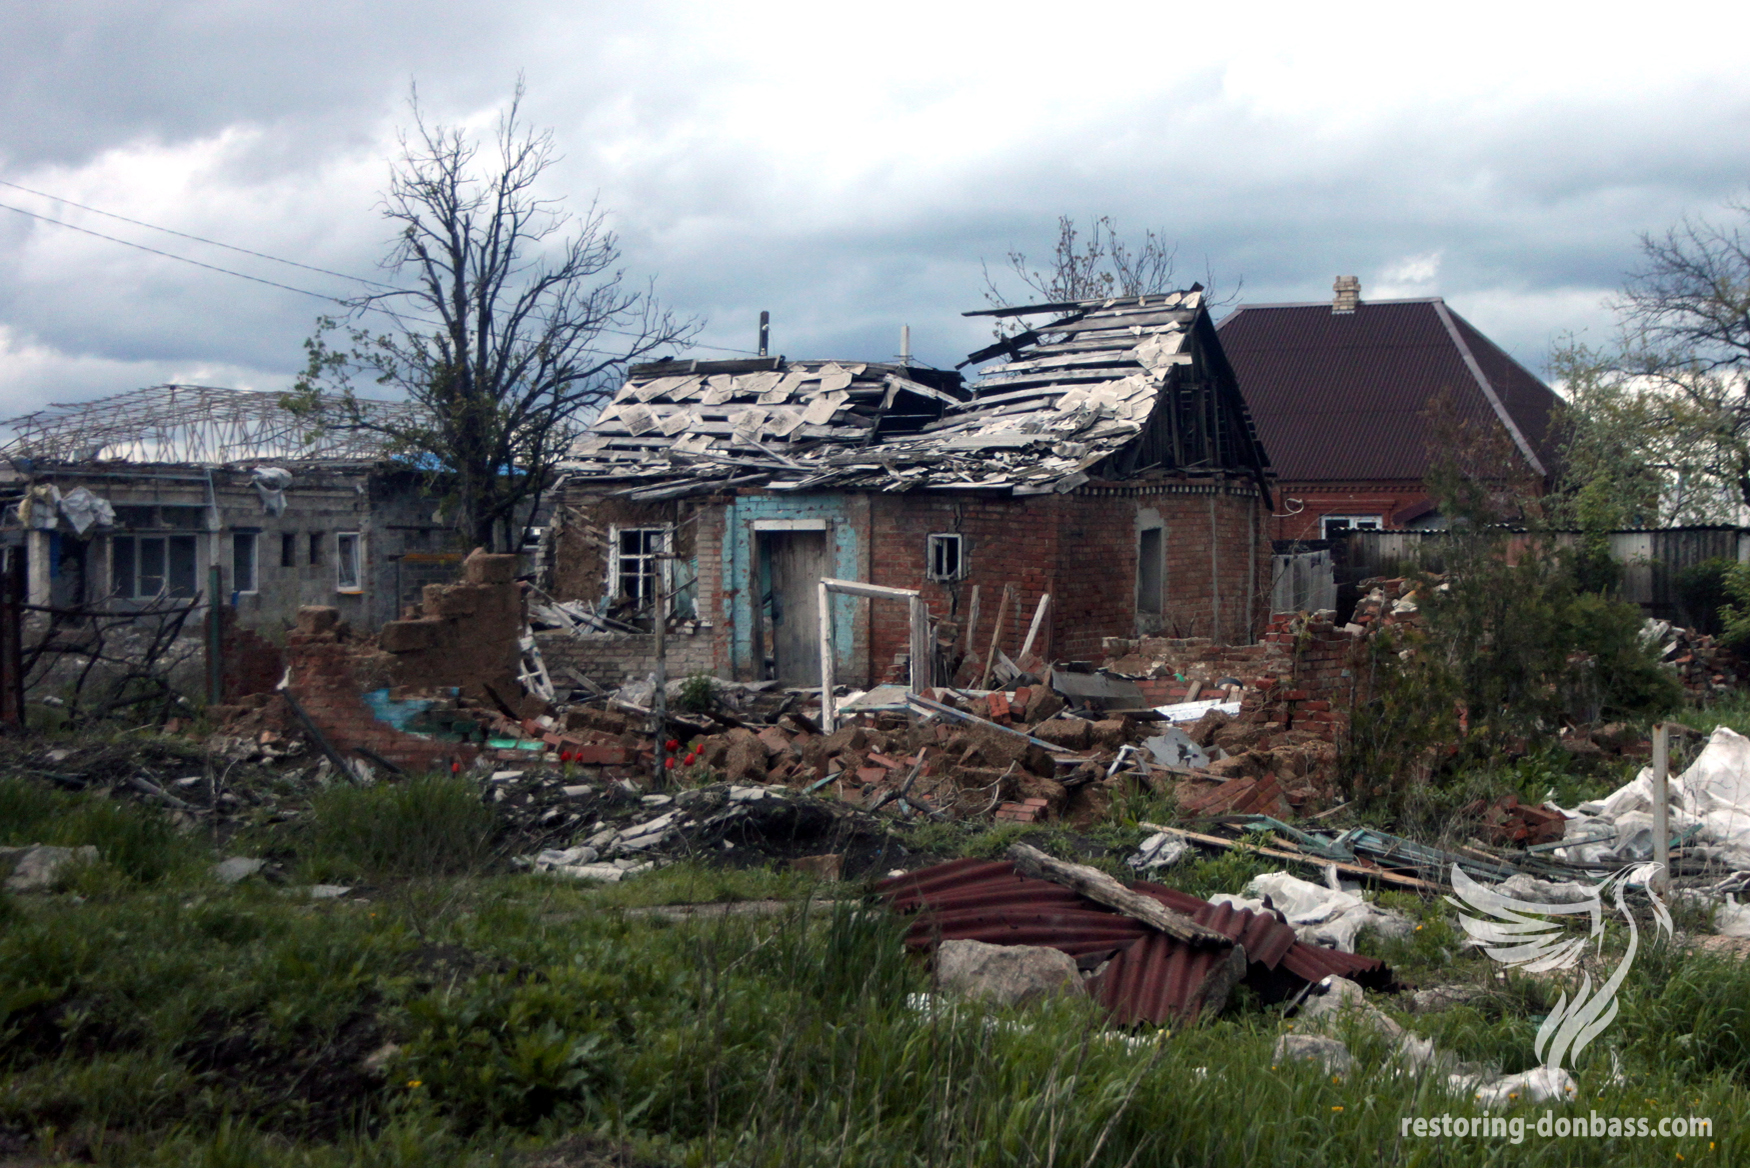 Semyonovka village a year after the beginning of hostilities, May 15, 2015